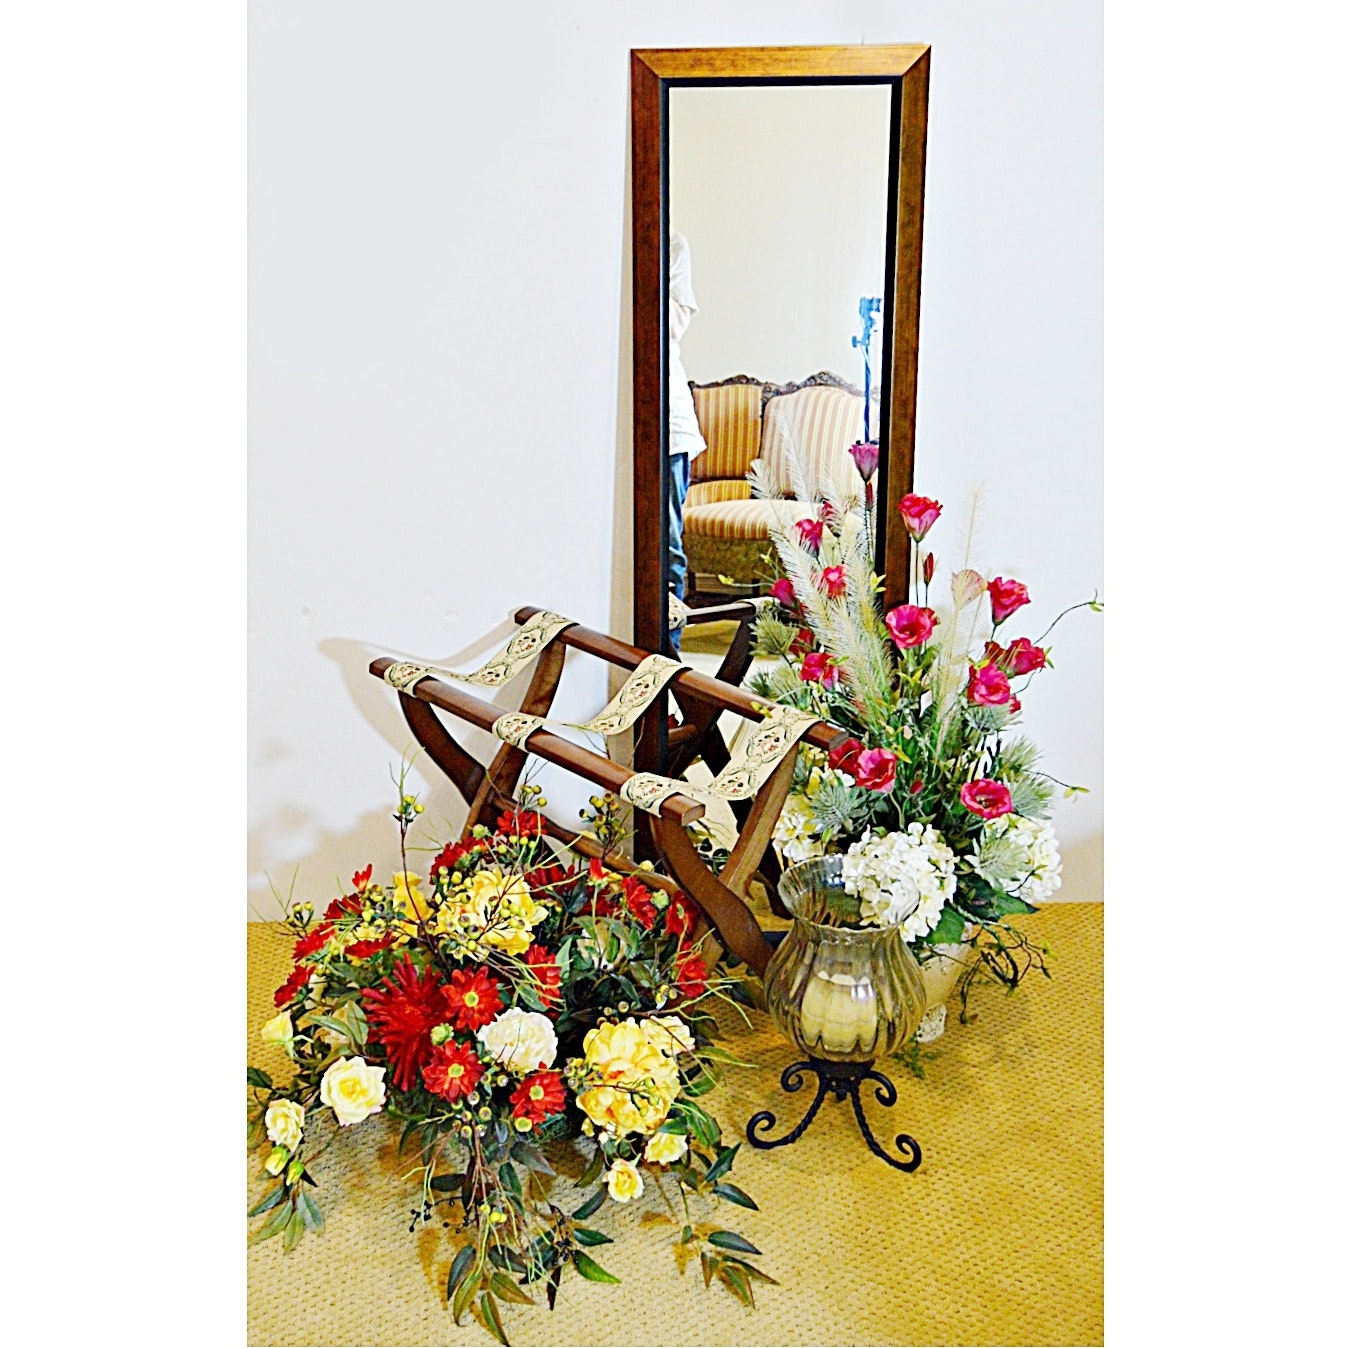 Decor with Wall Mirror, Floral Arrangements, Vase, Luggage Rack